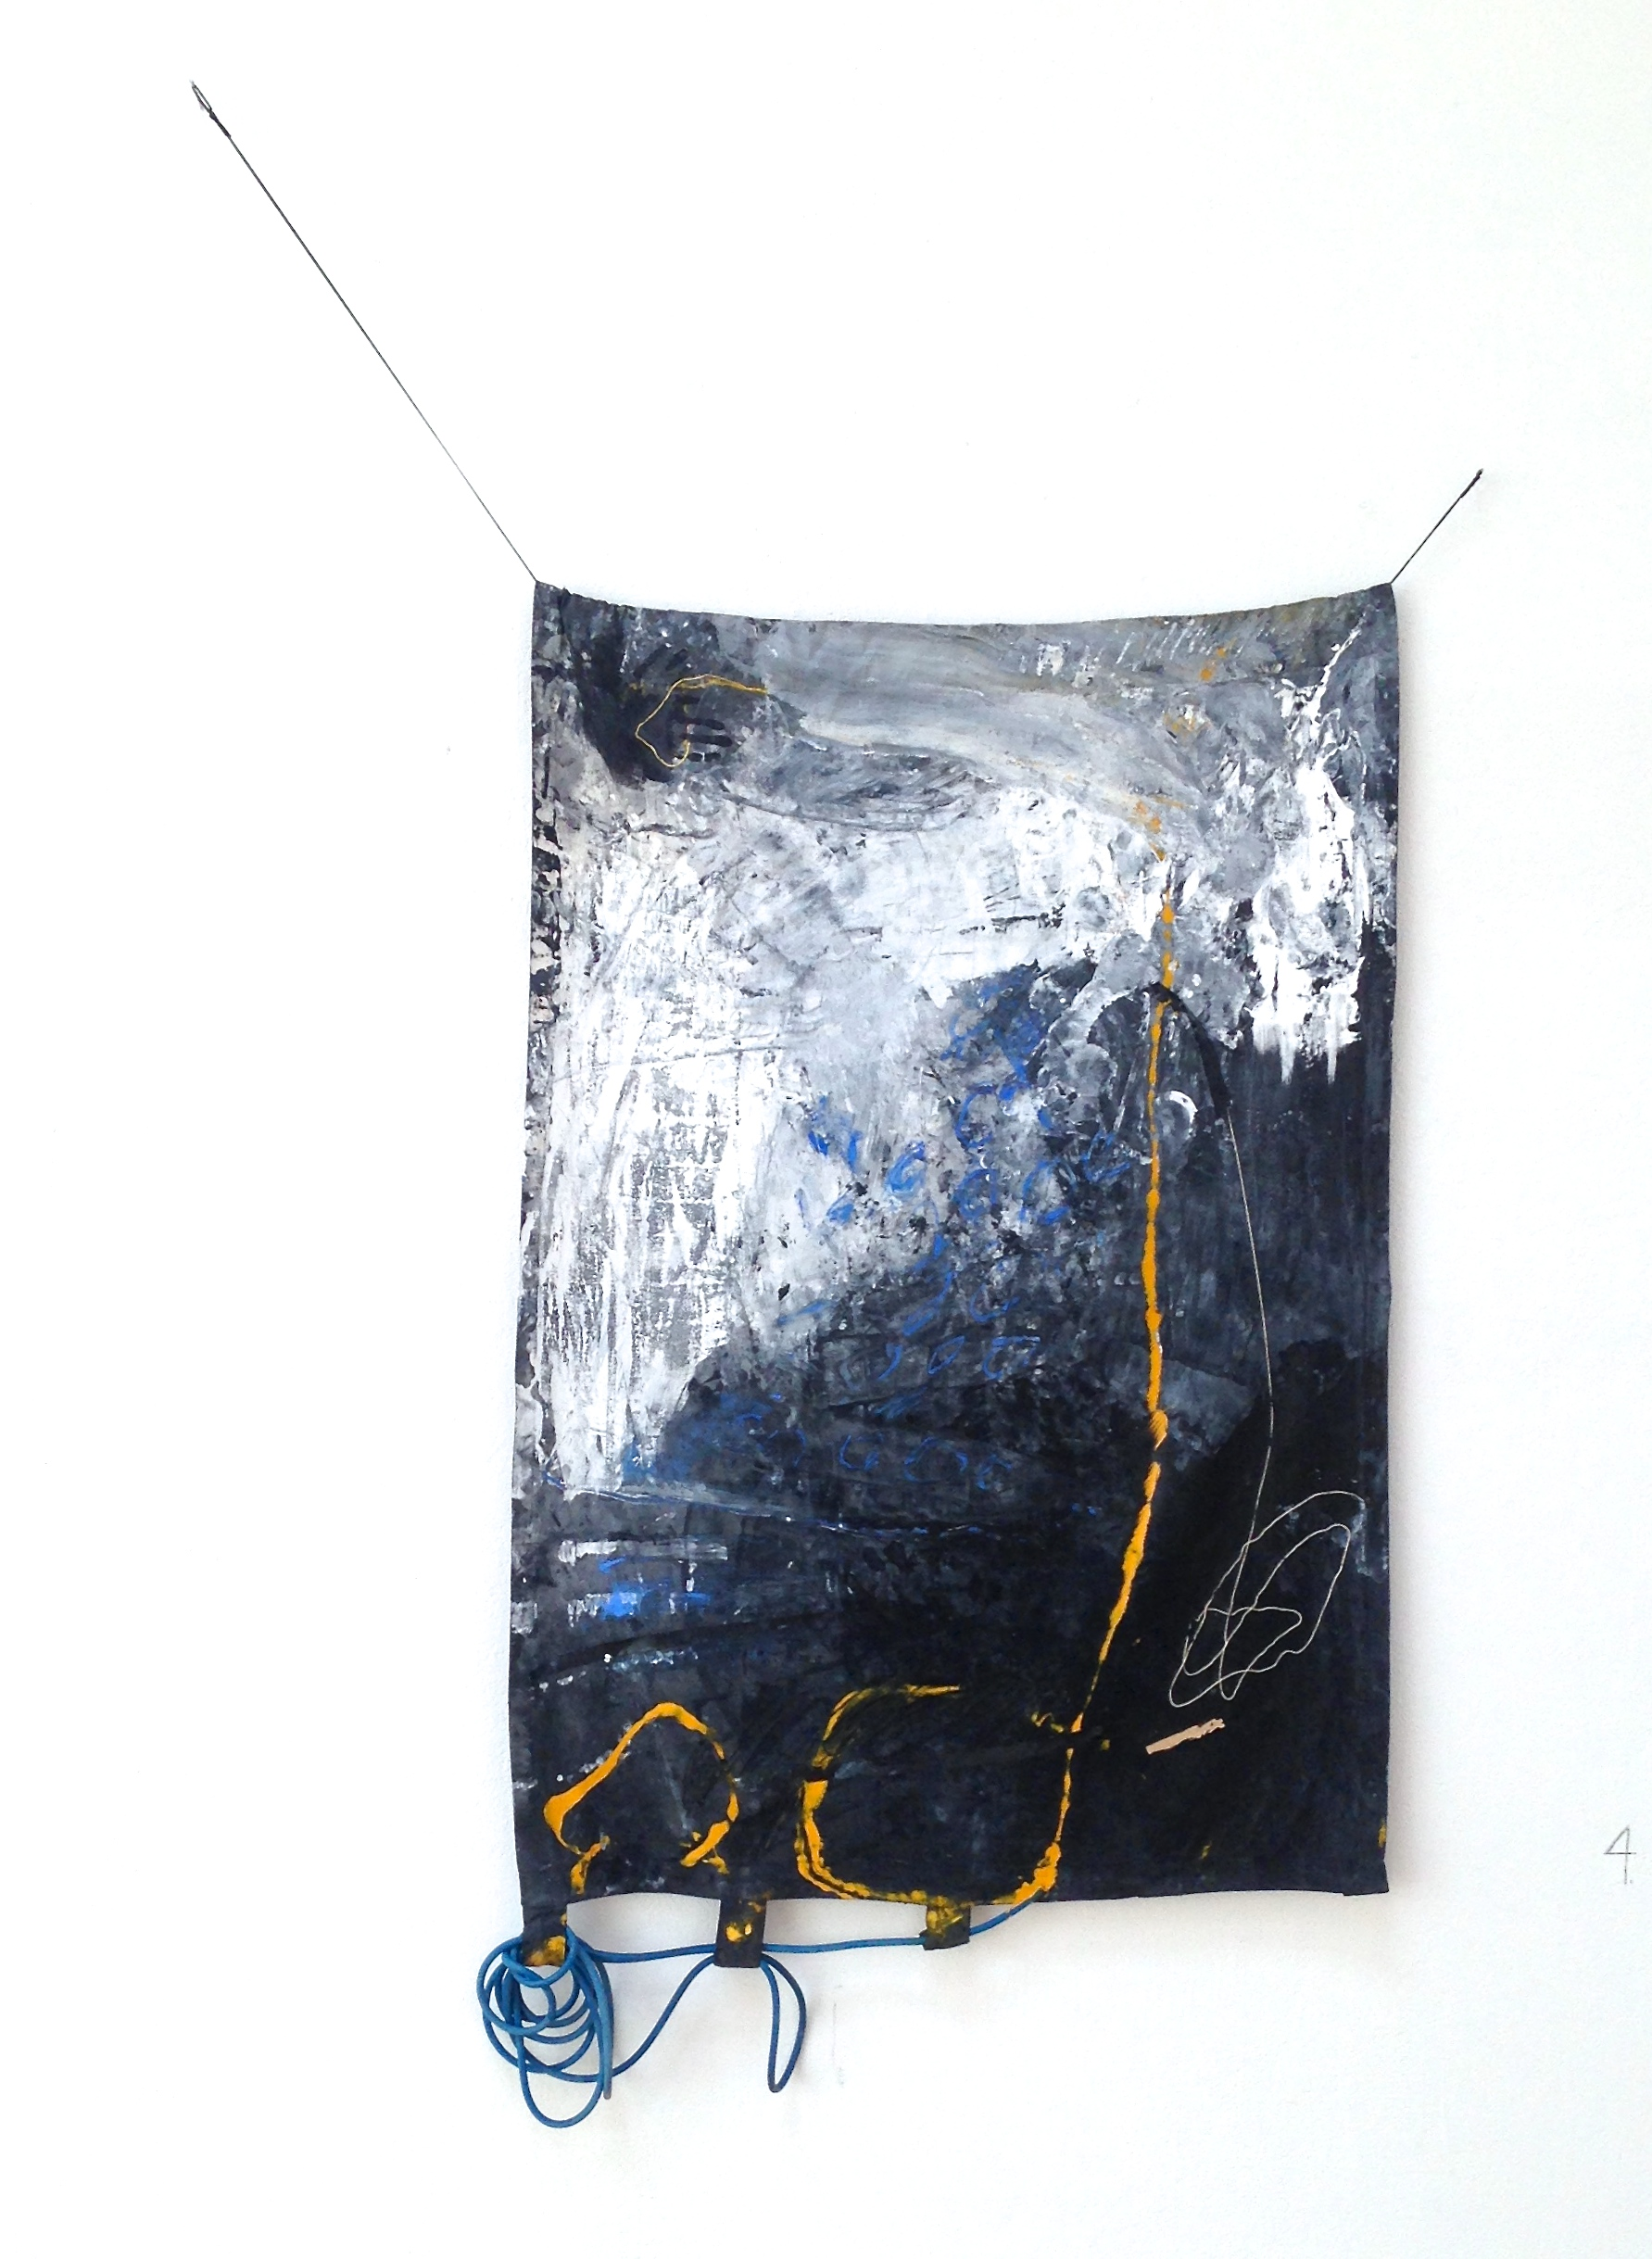 How I Hold It , latex and acrylic paints, tape, string, pastel, elastic cord, and exercise bands on canvas, 69×40 inches, 2015